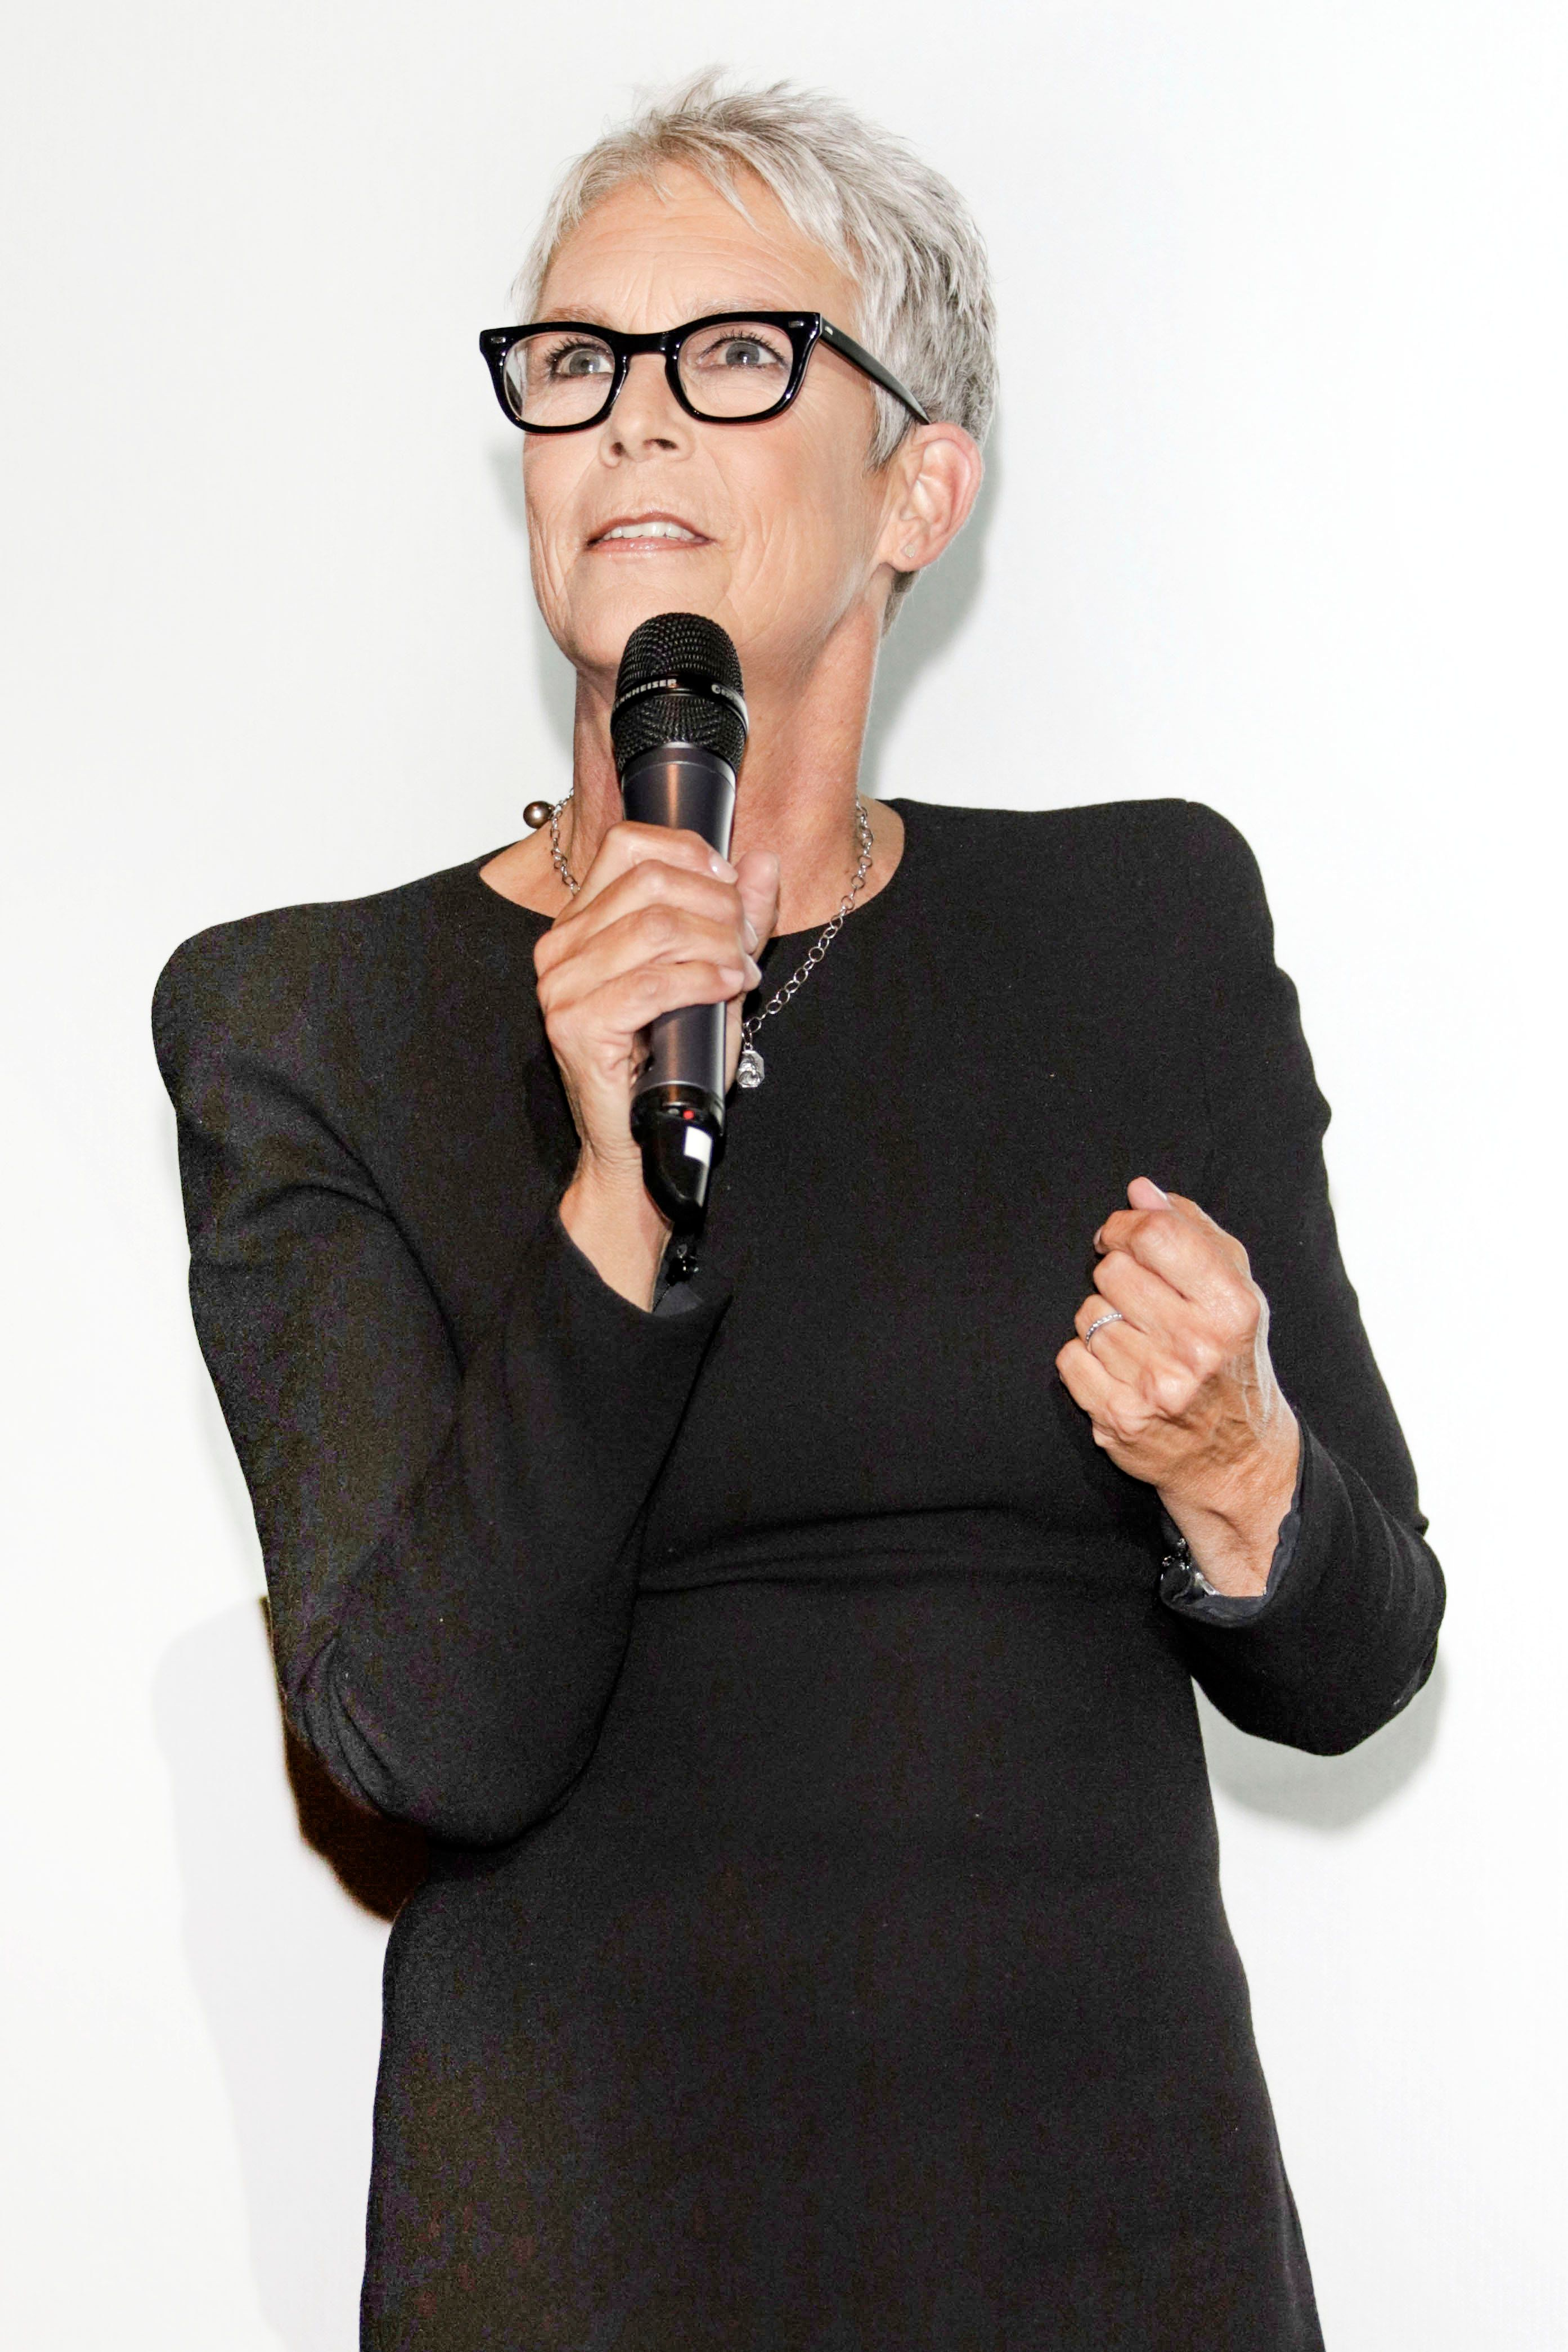 Jamie Lee Curtis Uses 2 Words To Shut Down Widely Ridiculed Fox News Gun Story